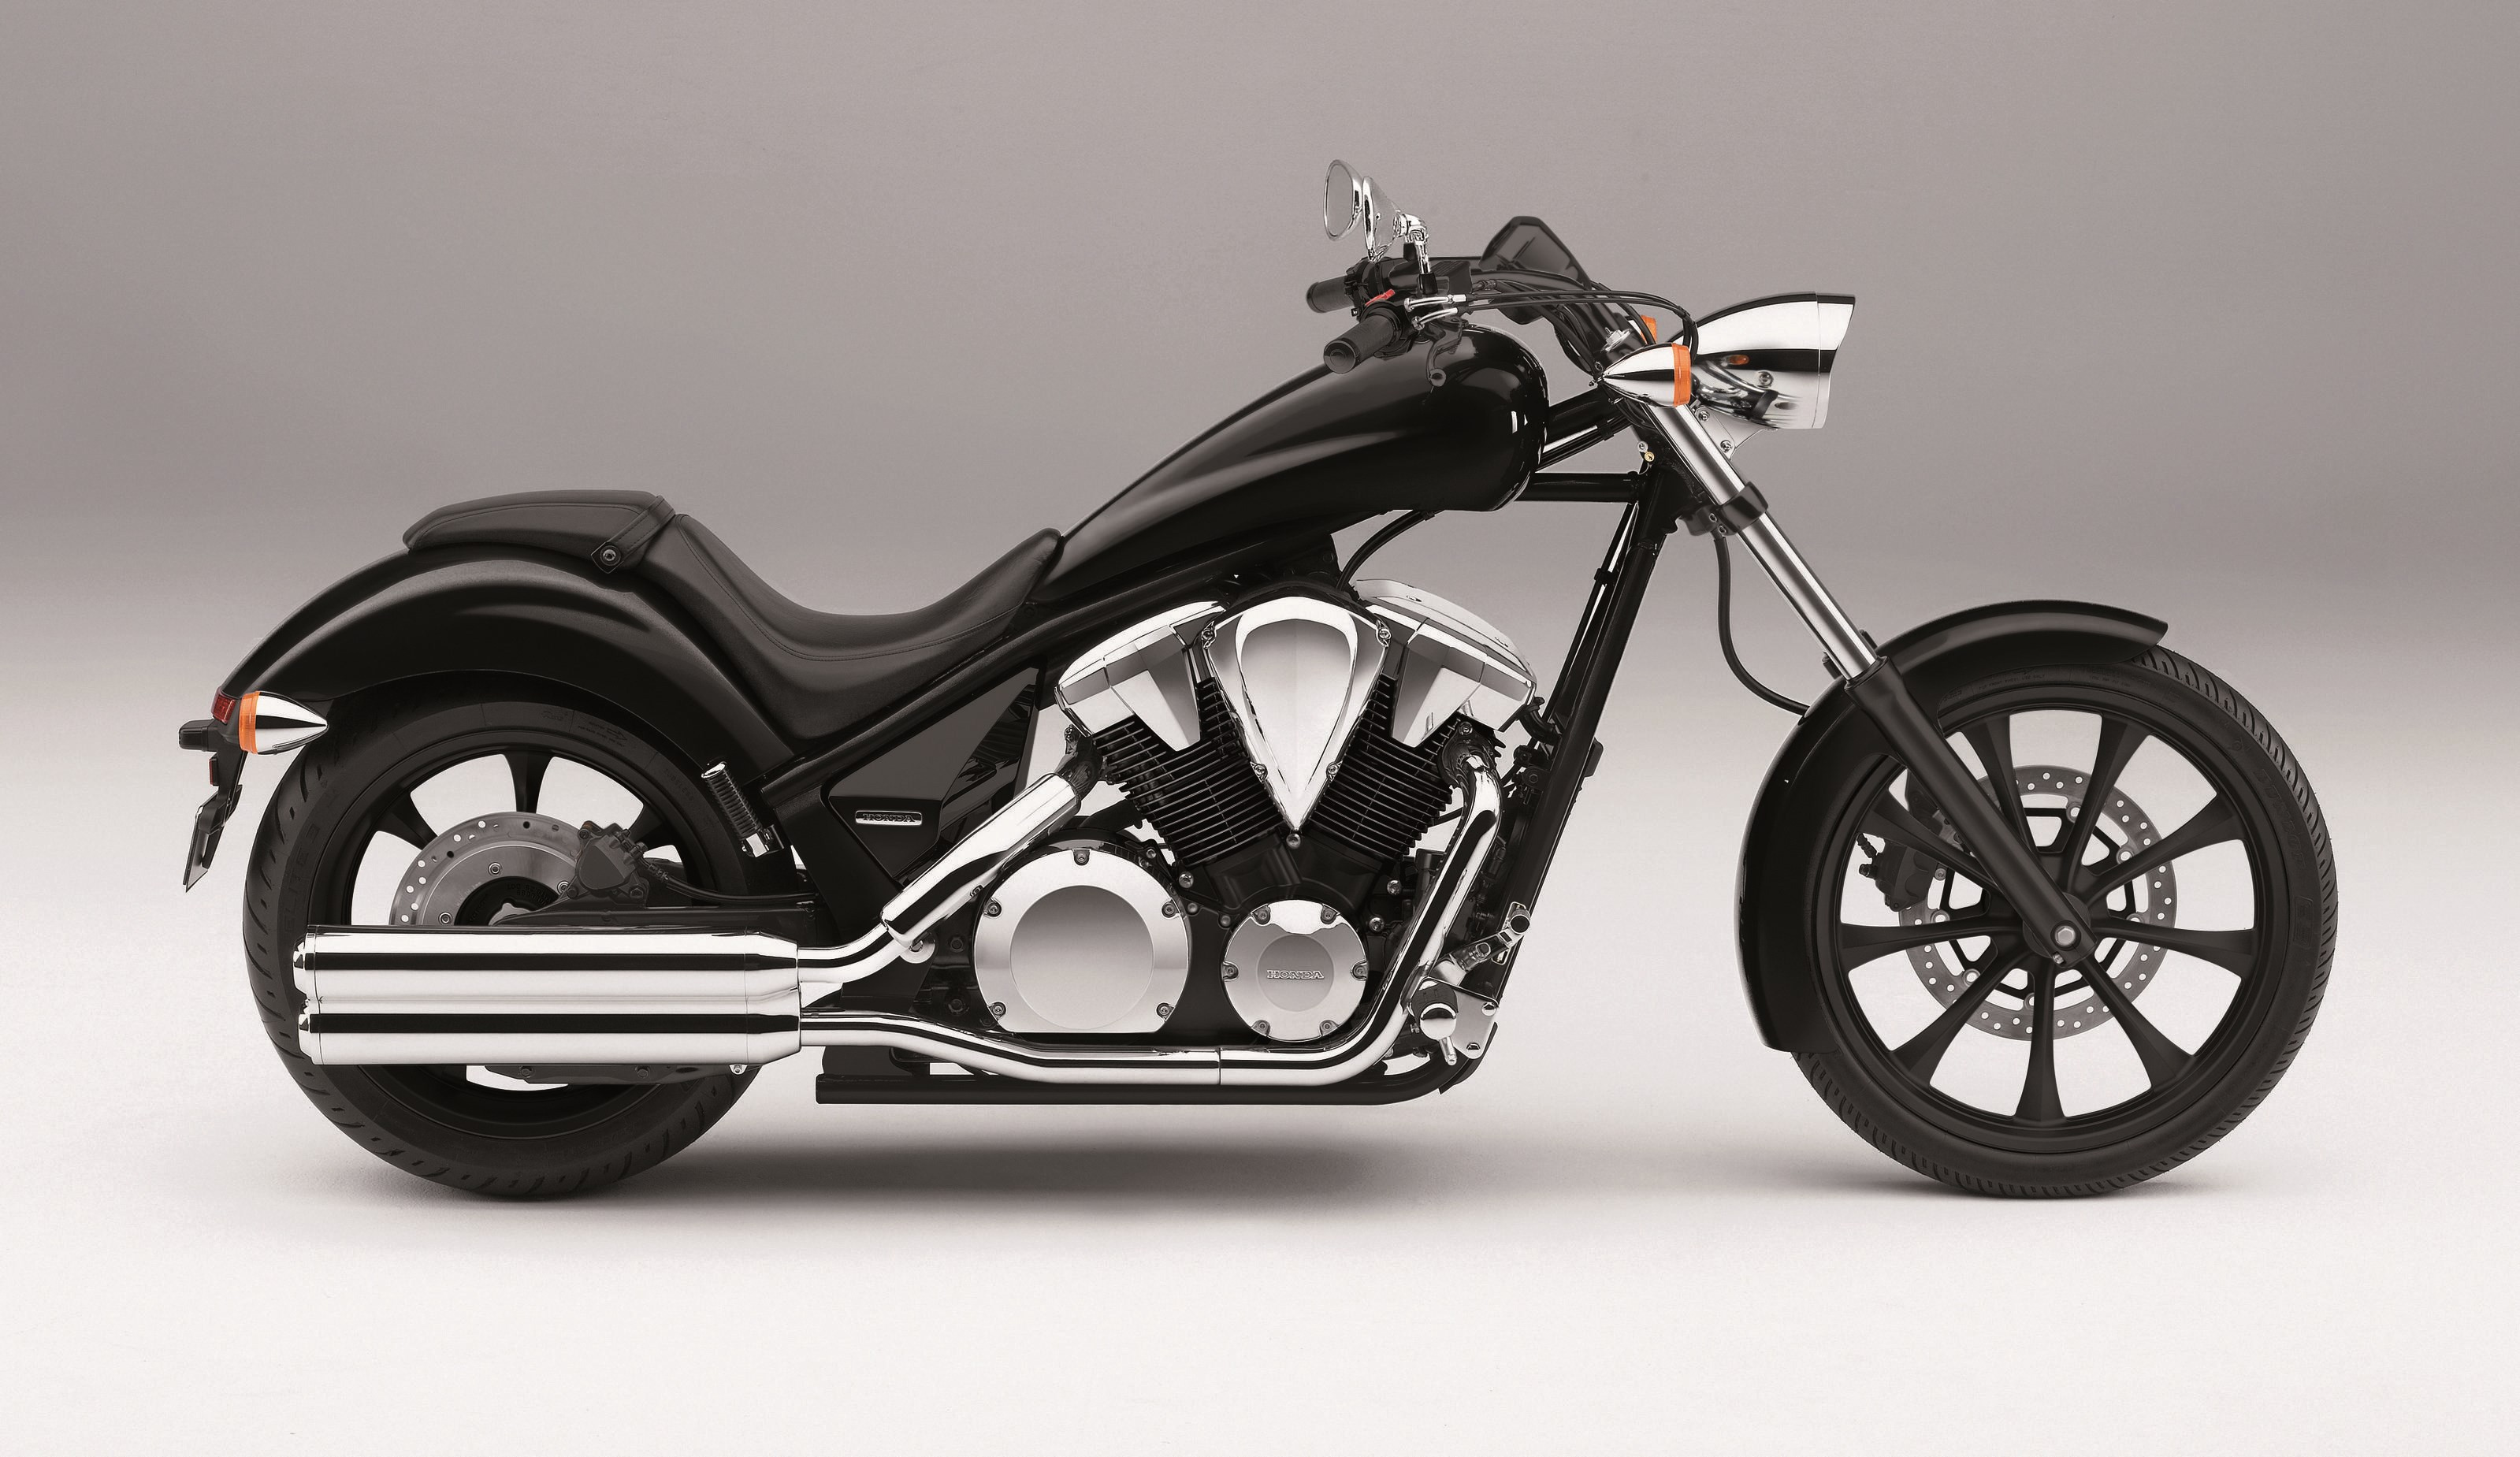 Five Ready To Buy Factory Custom Motorcycles Drivemag Riders